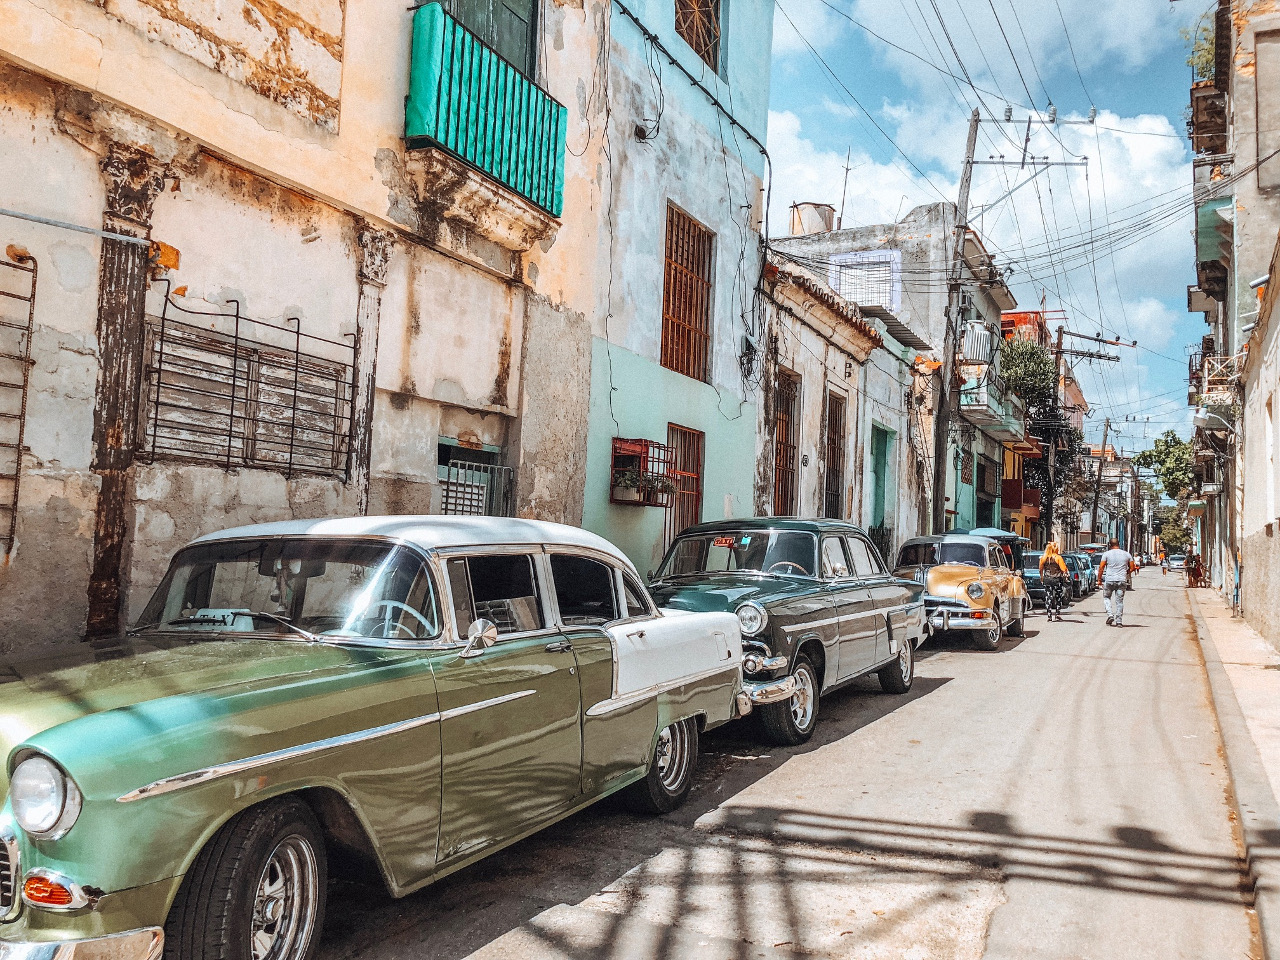 Old Havana during a Havana trip - Discover all you need to know about traveling to Cuba - Cuba tips shared by a traveller #cubatips #cubafacts #havanatips #havanafacts #cubathingstoknow